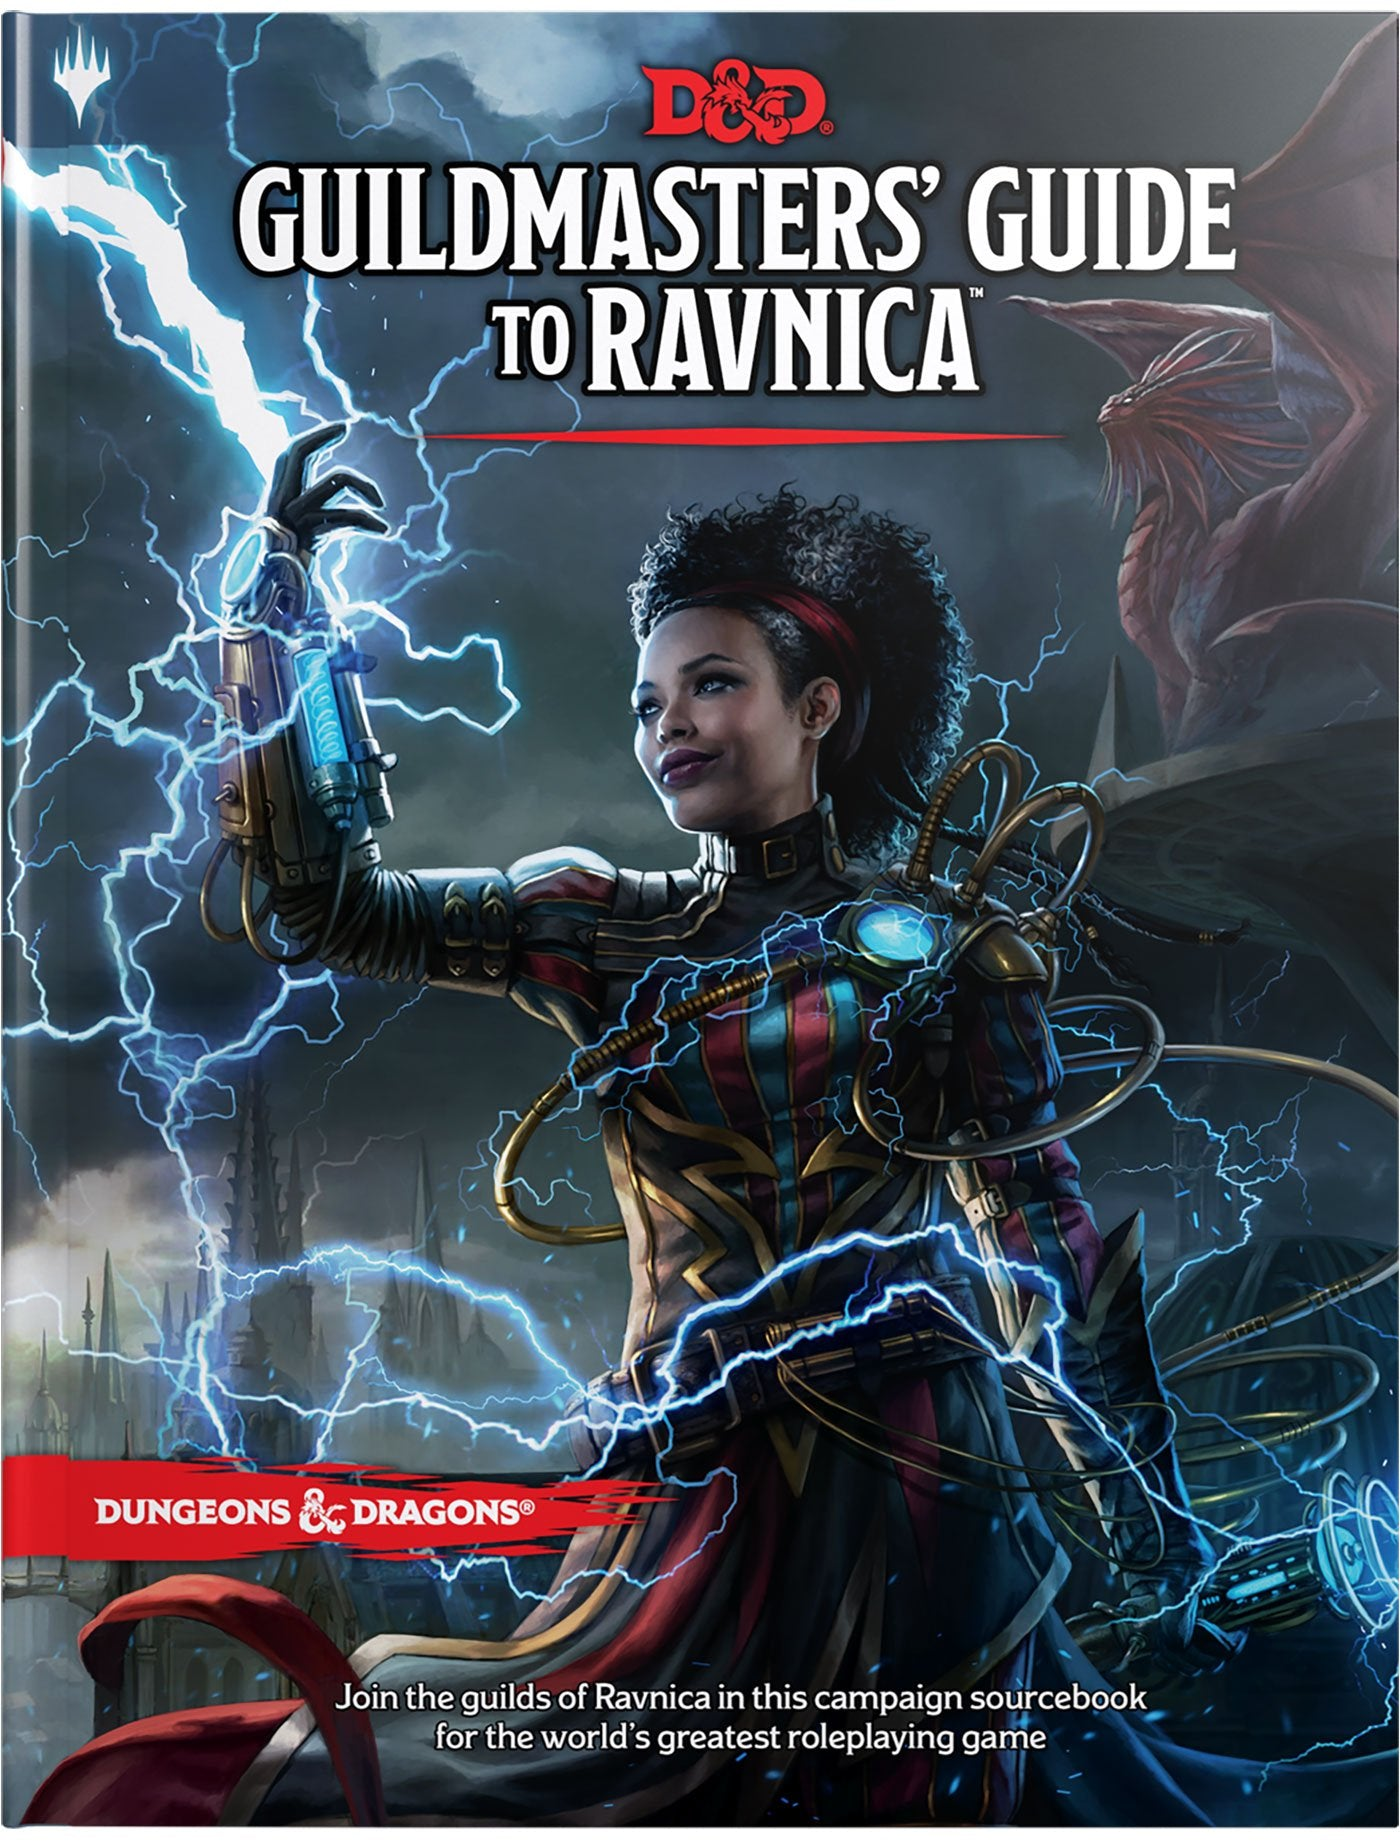 DUNGEONS & DRAGONS: Guildmasters' Guide to Ravnica 5E - Linebreakers